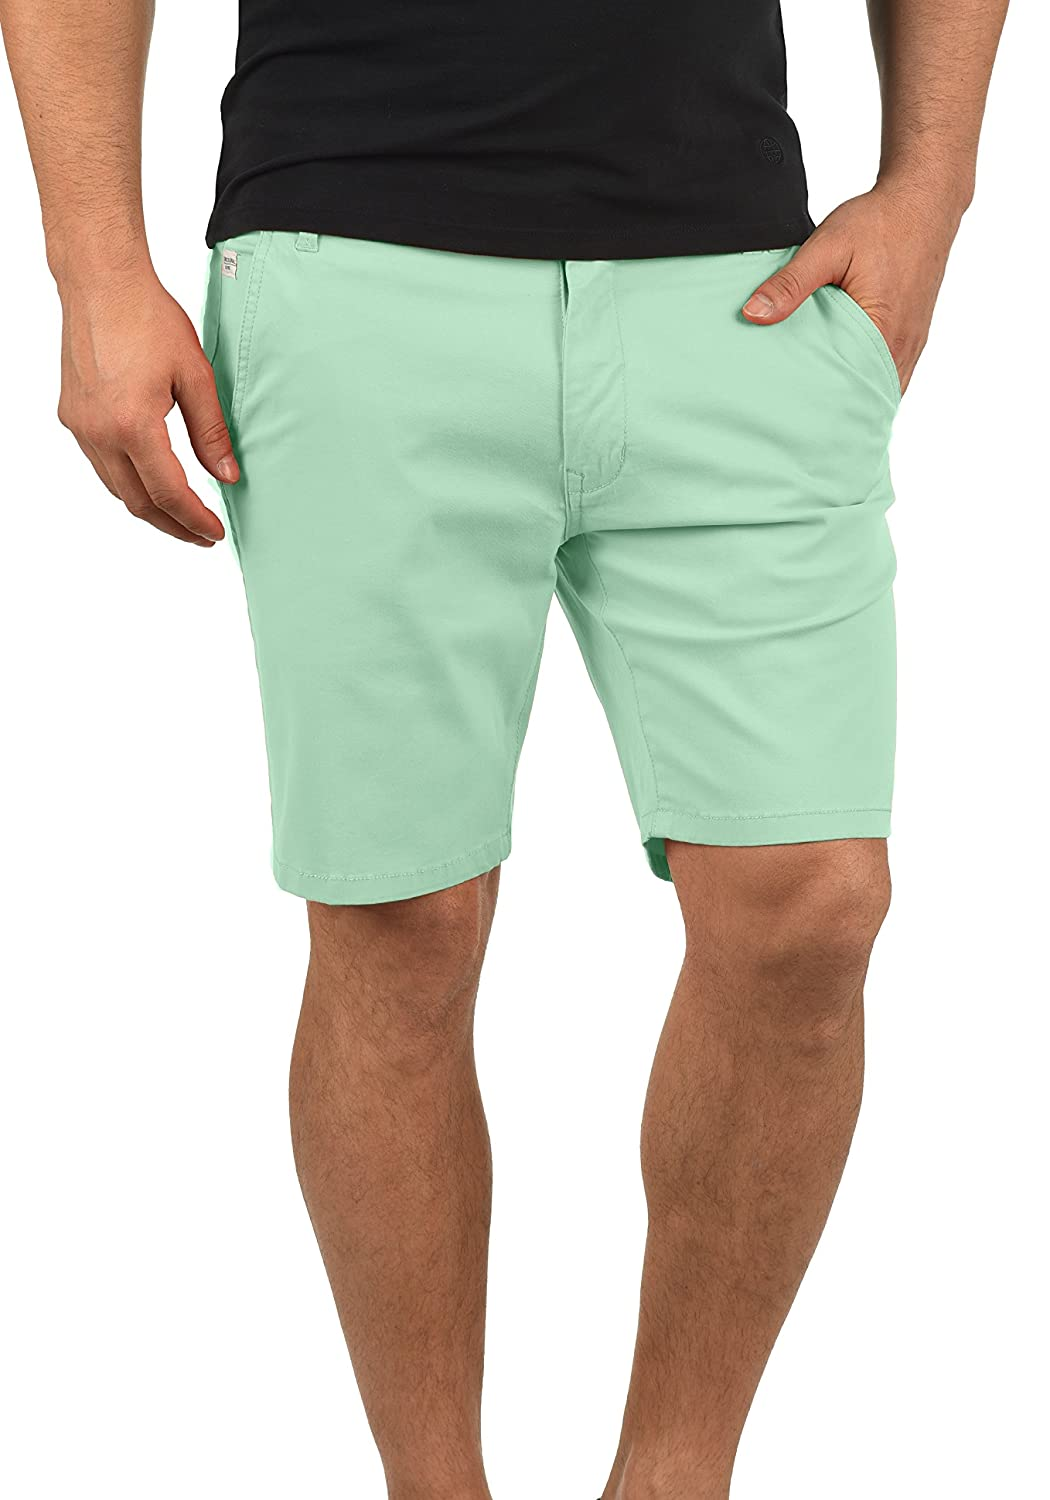 Shine Original Montero Men's Chino Shorts Bermuda Stretch Regular- Fit